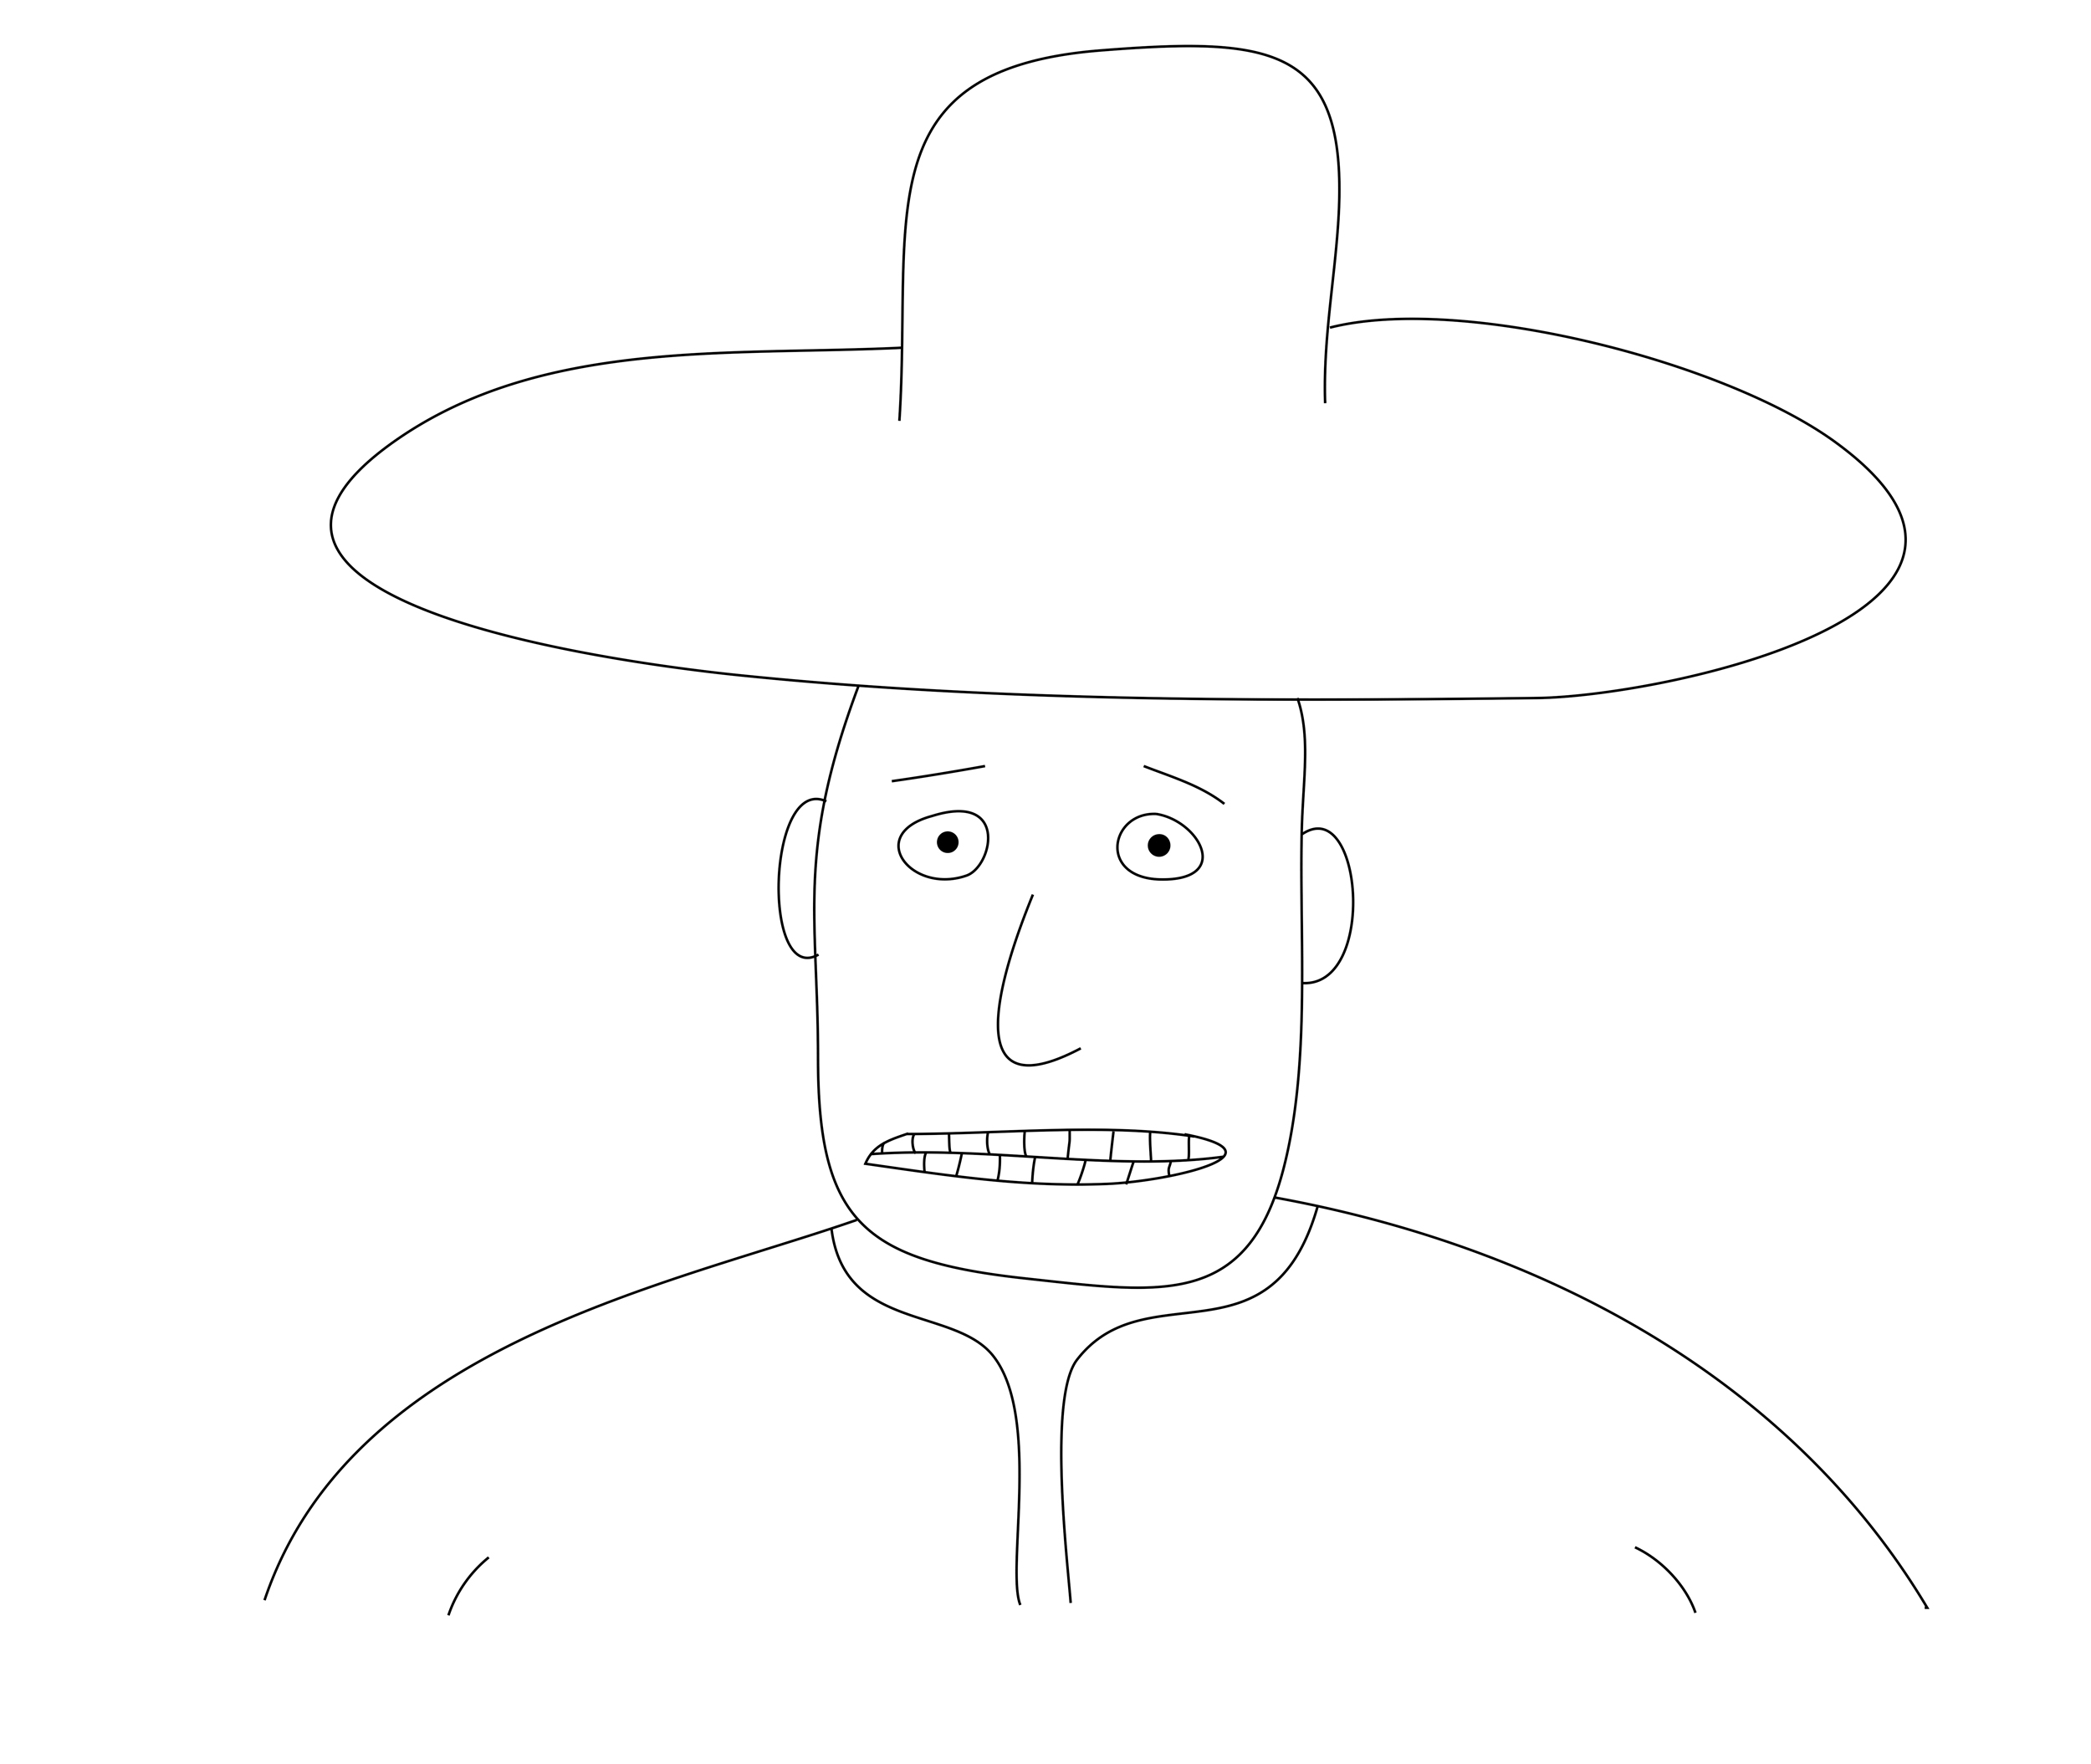 Man with Hat Smooth Illustrator copy.jpg